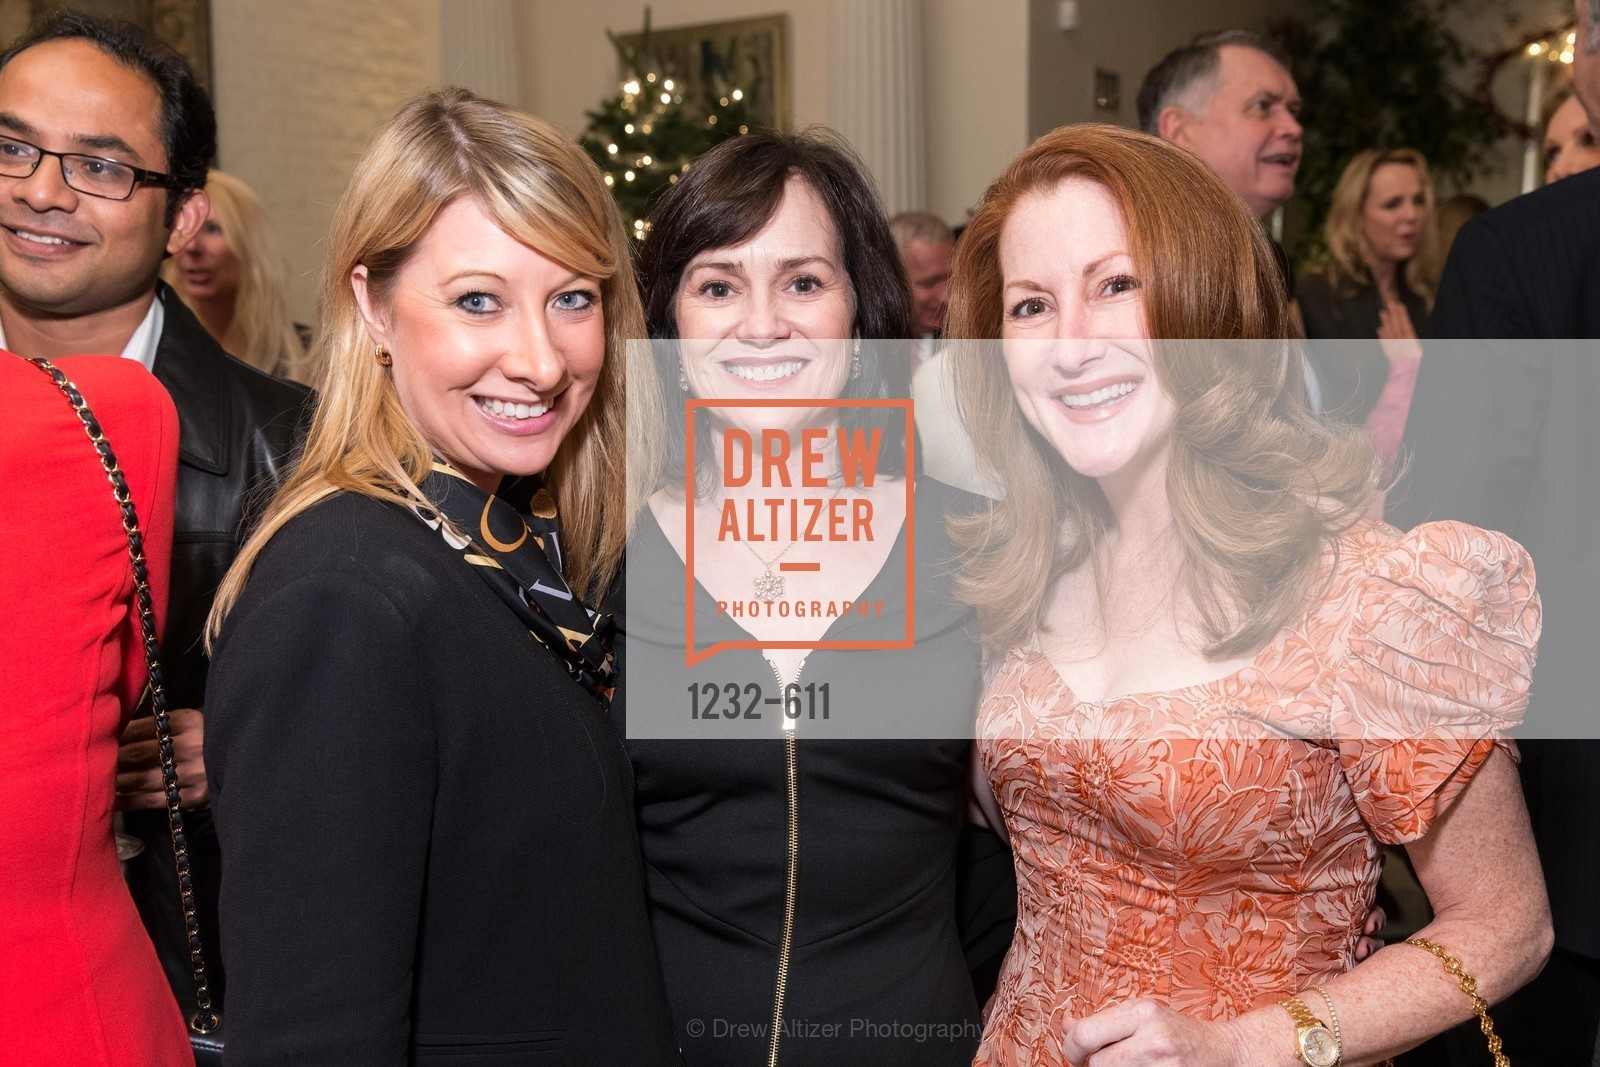 Jennifer Mancuso, V'Anne Singleton, Ave Seltsam, San Francisco Ballet Auxiliary's Gala Launch party hosted by La Perla., VILLA TAVERA. 27 HOTALING PLACE, December 1st, 2015,Drew Altizer, Drew Altizer Photography, full-service event agency, private events, San Francisco photographer, photographer California